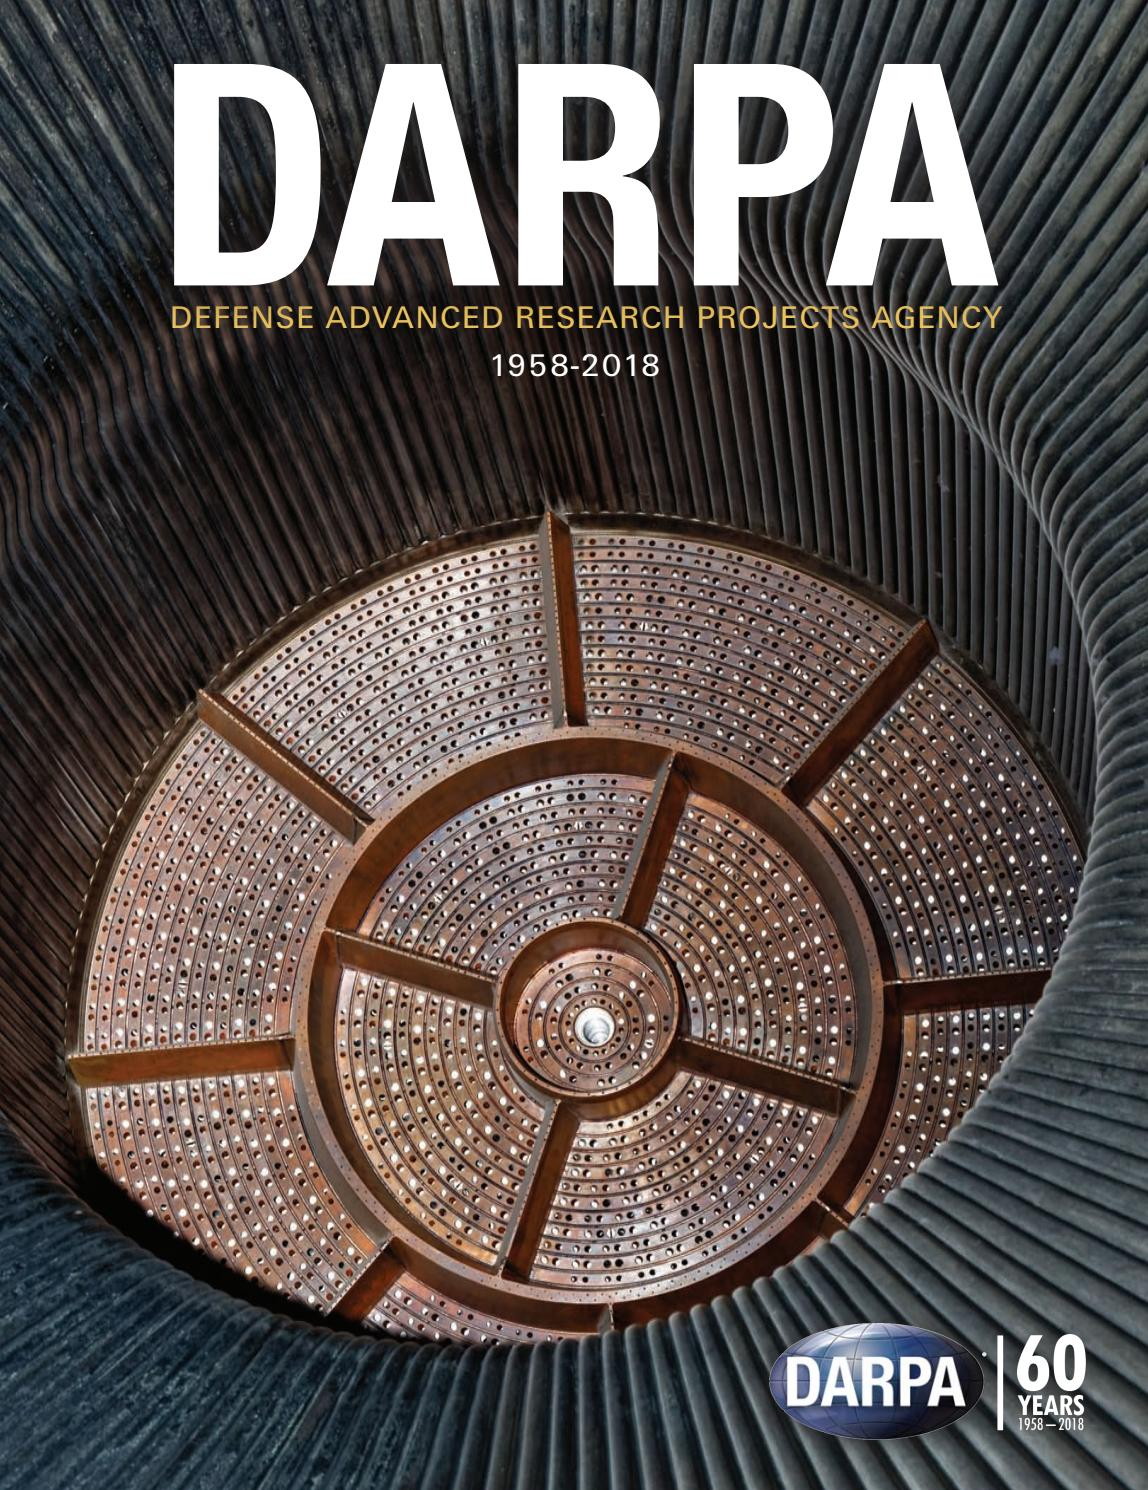 15319fbe0aba DARPA  Defense Advanced Research Projects Agency 1958-2018 by Faircount  Media Group - issuu